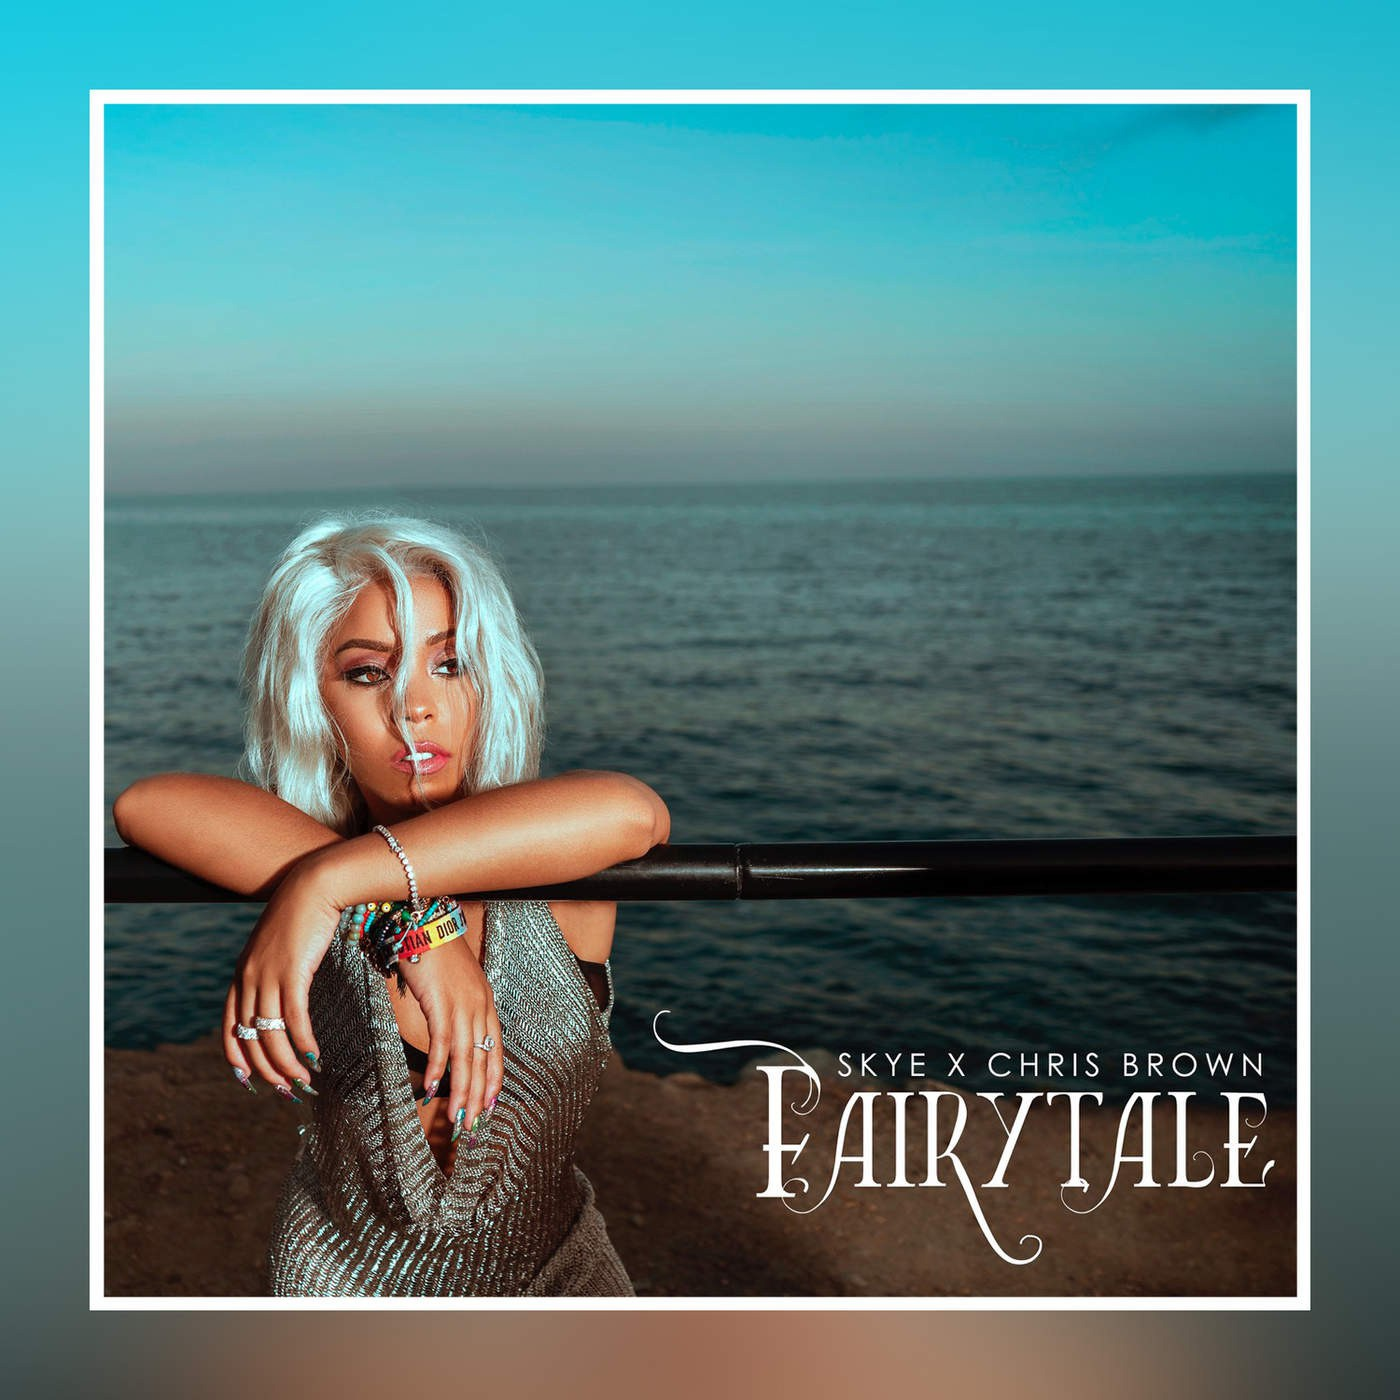 Download Skye x Chris Brown Fairytale Mp3 Download